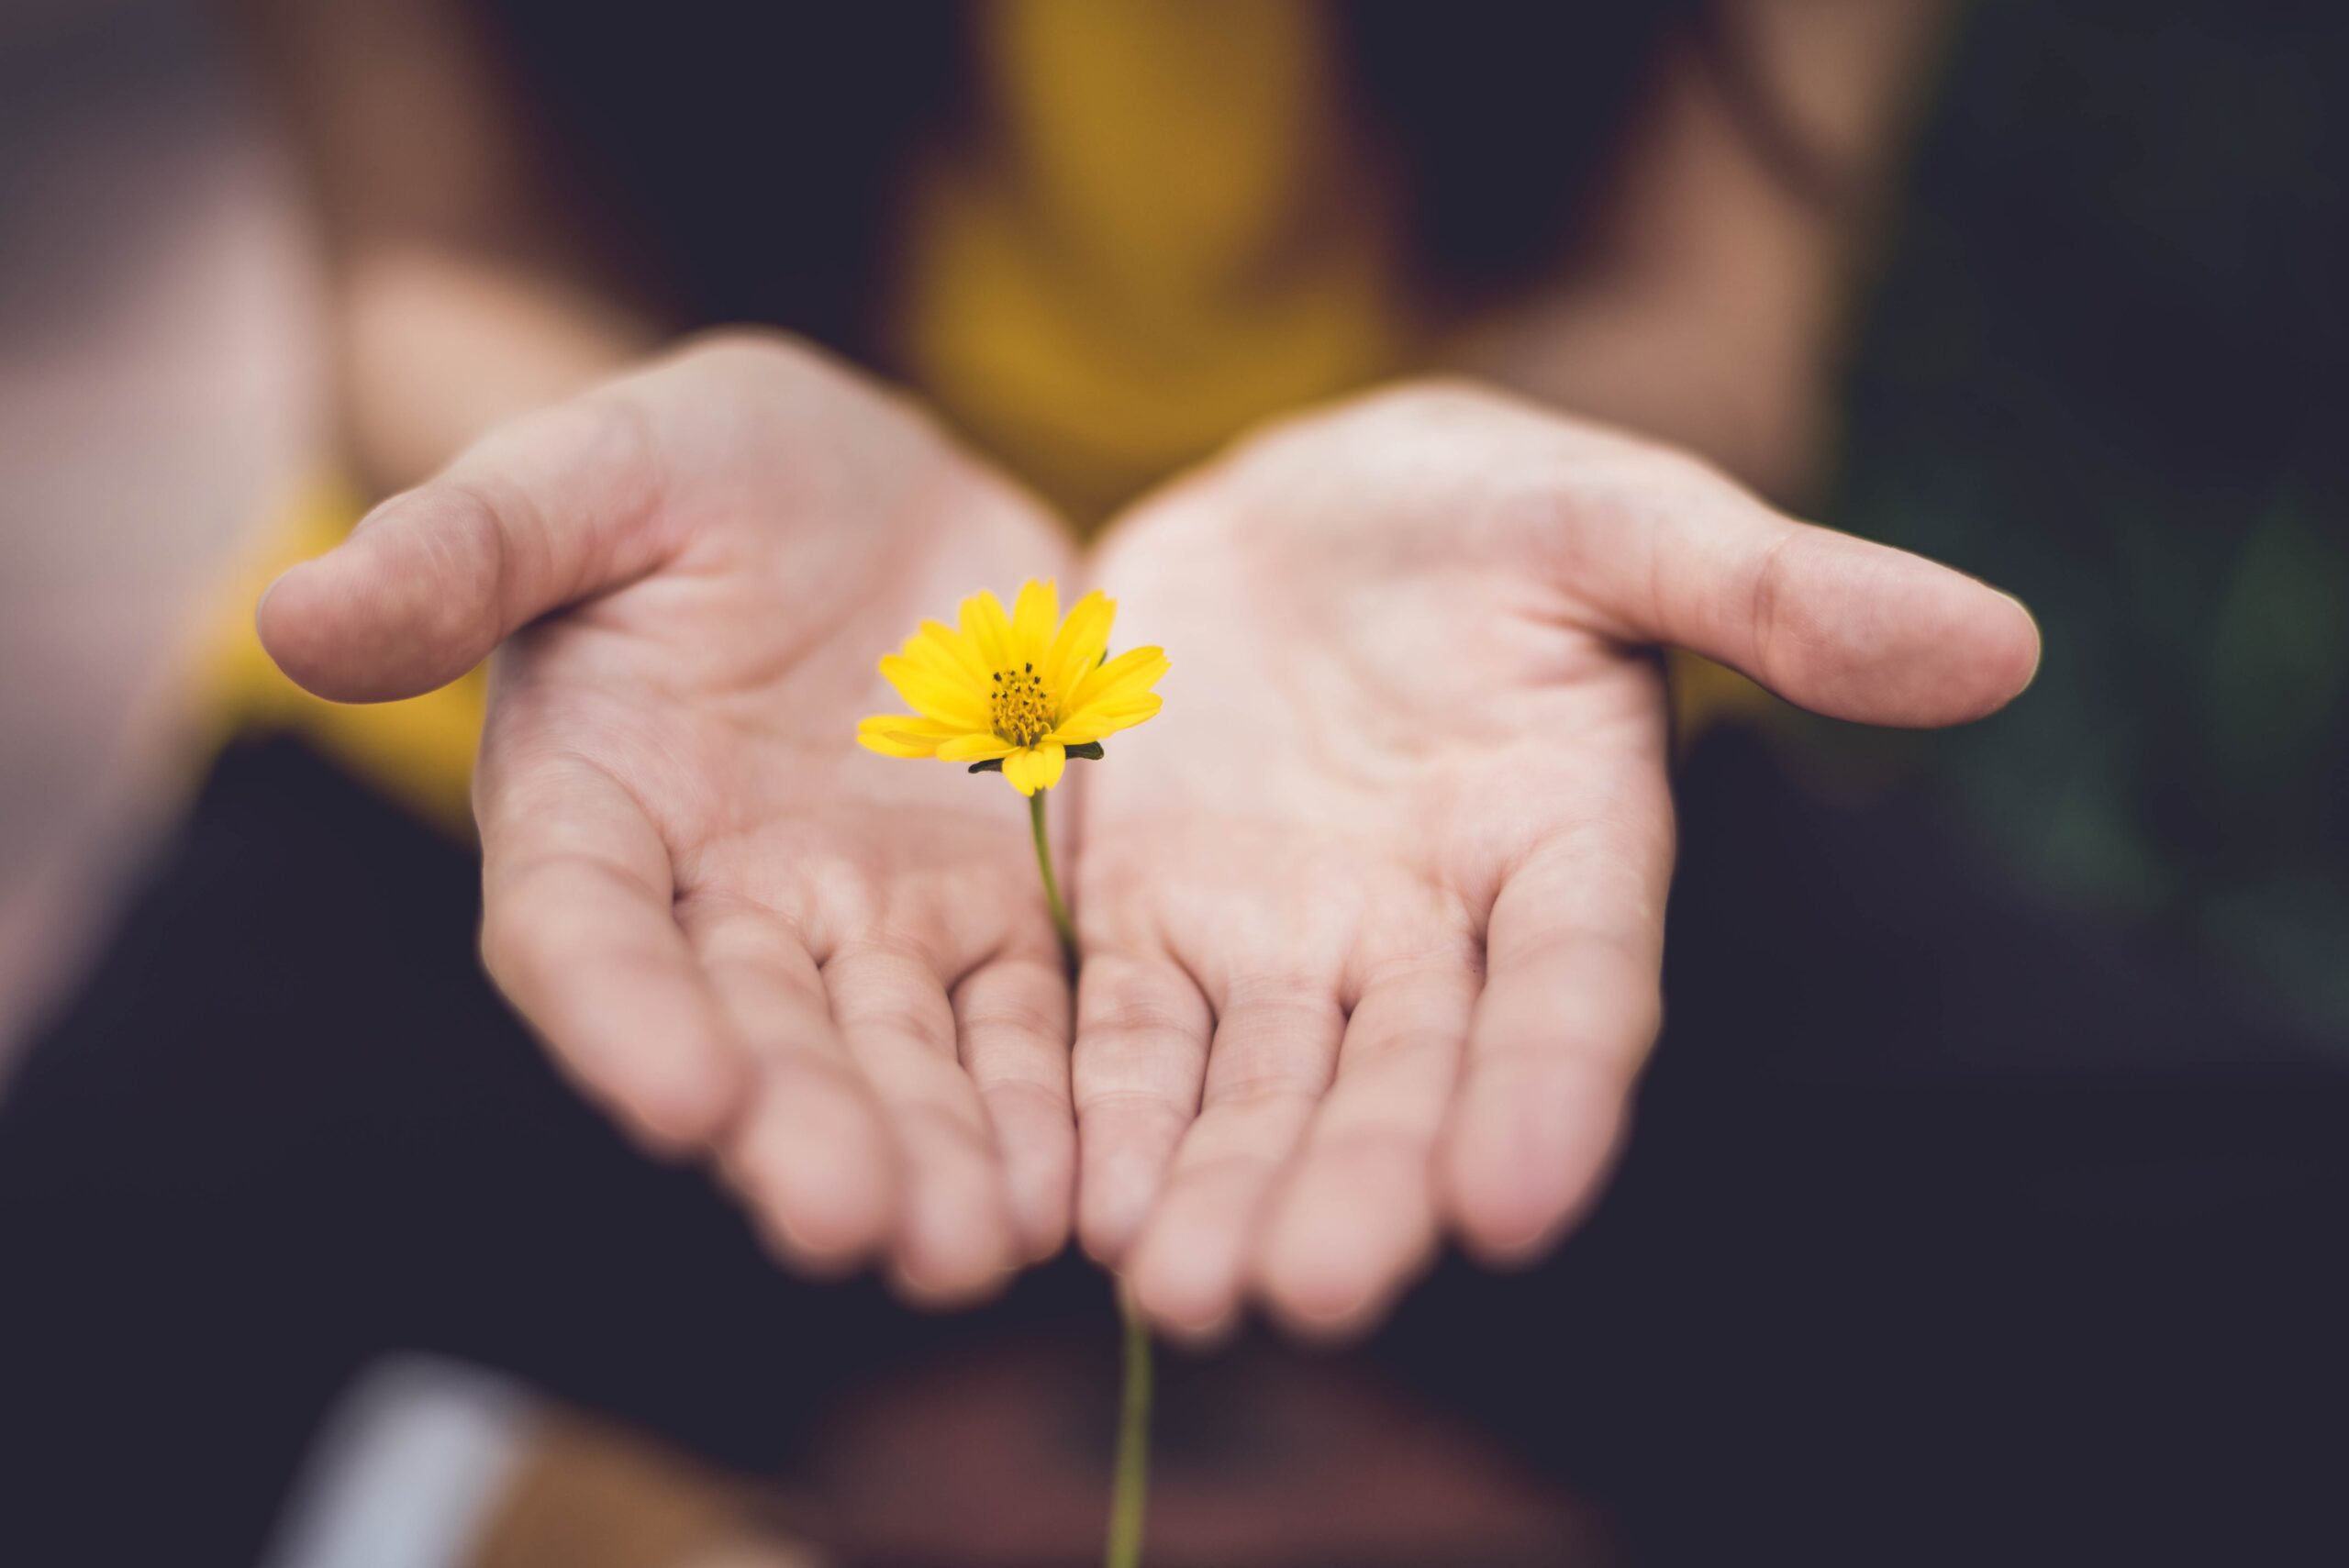 Two hands offering a yellow flower